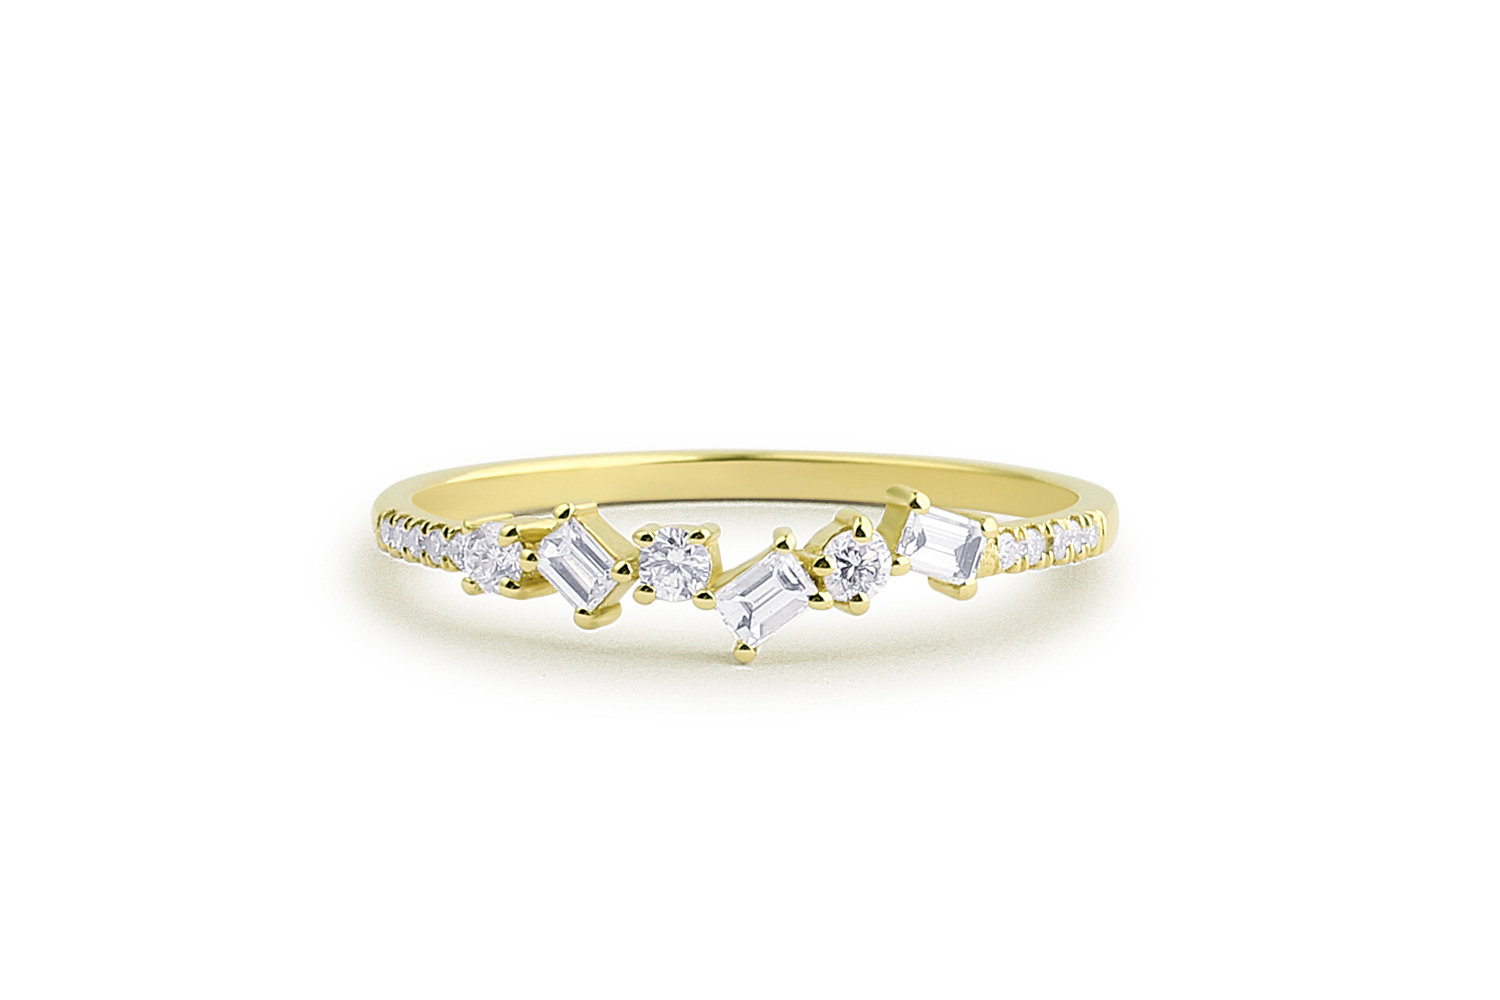 Baguette Diamond Ring / Baguette And Round Diamond Alternating Wedding Band  In 14K Gold / Anniversary Band / Stacking Ring / Wedding Ring With Most Popular Baguette And Round Diamond Alternating Anniversary Bands In White Gold (View 13 of 25)